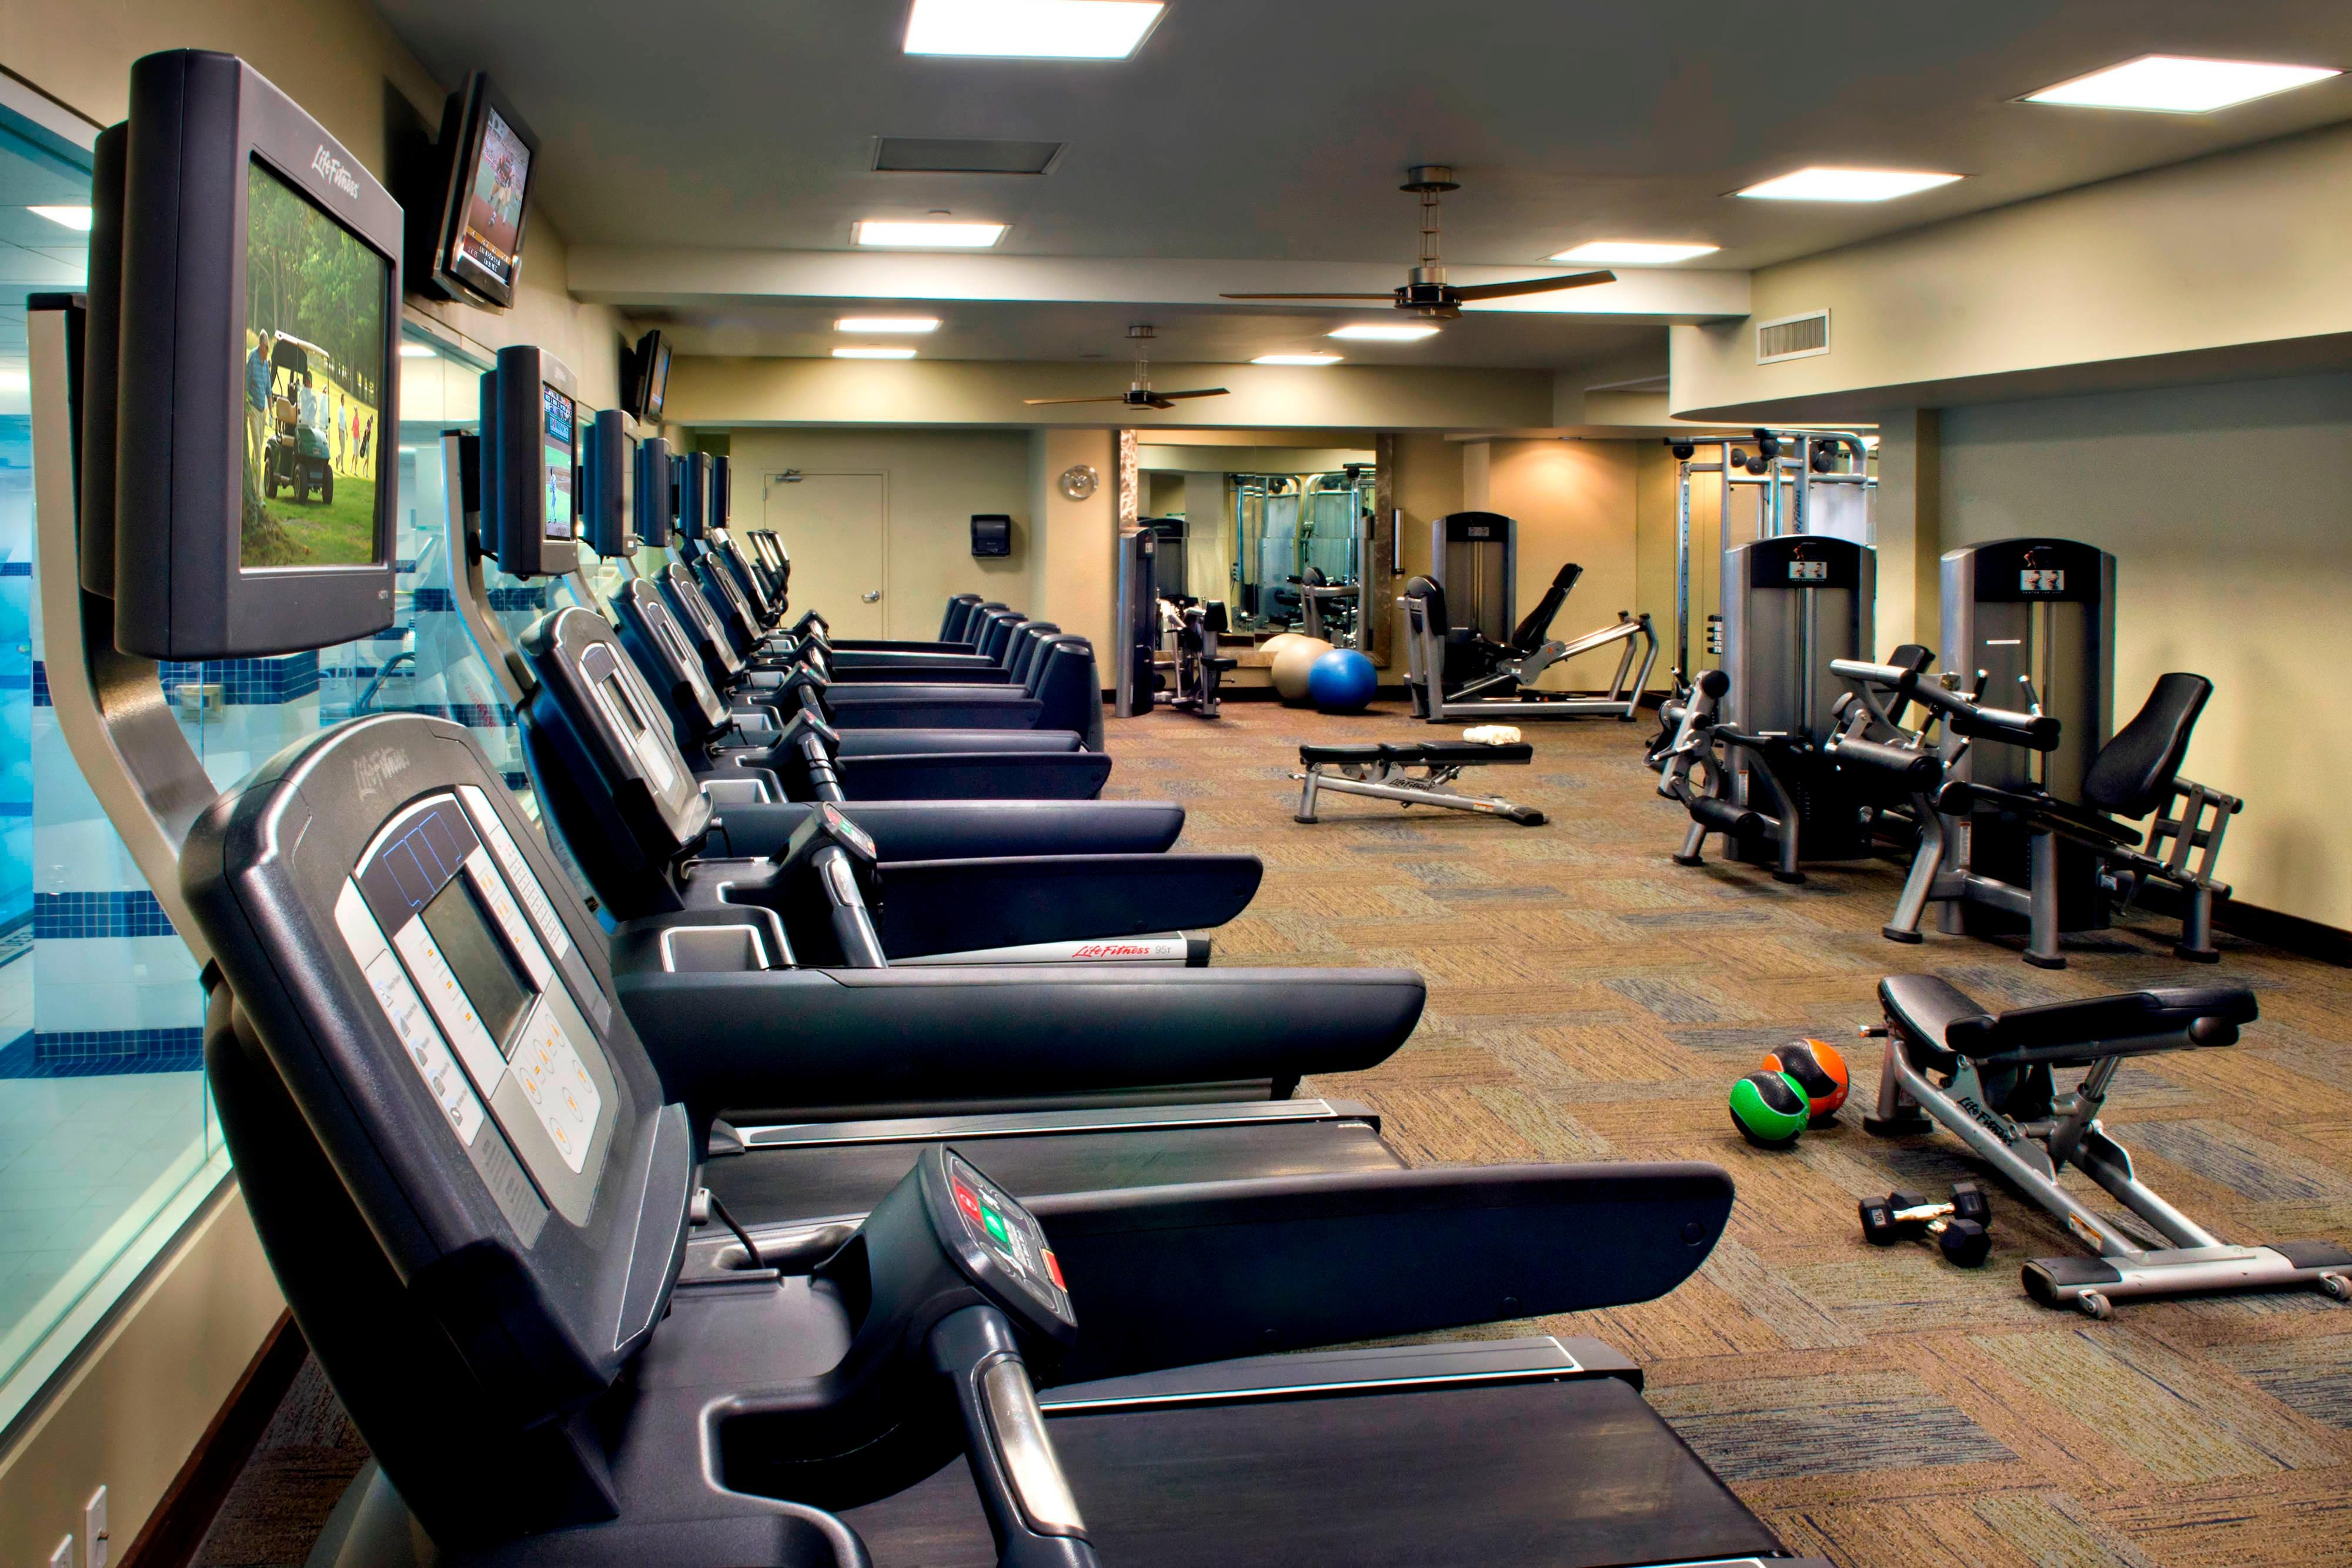 Brooklyn Hotel Fitness Center